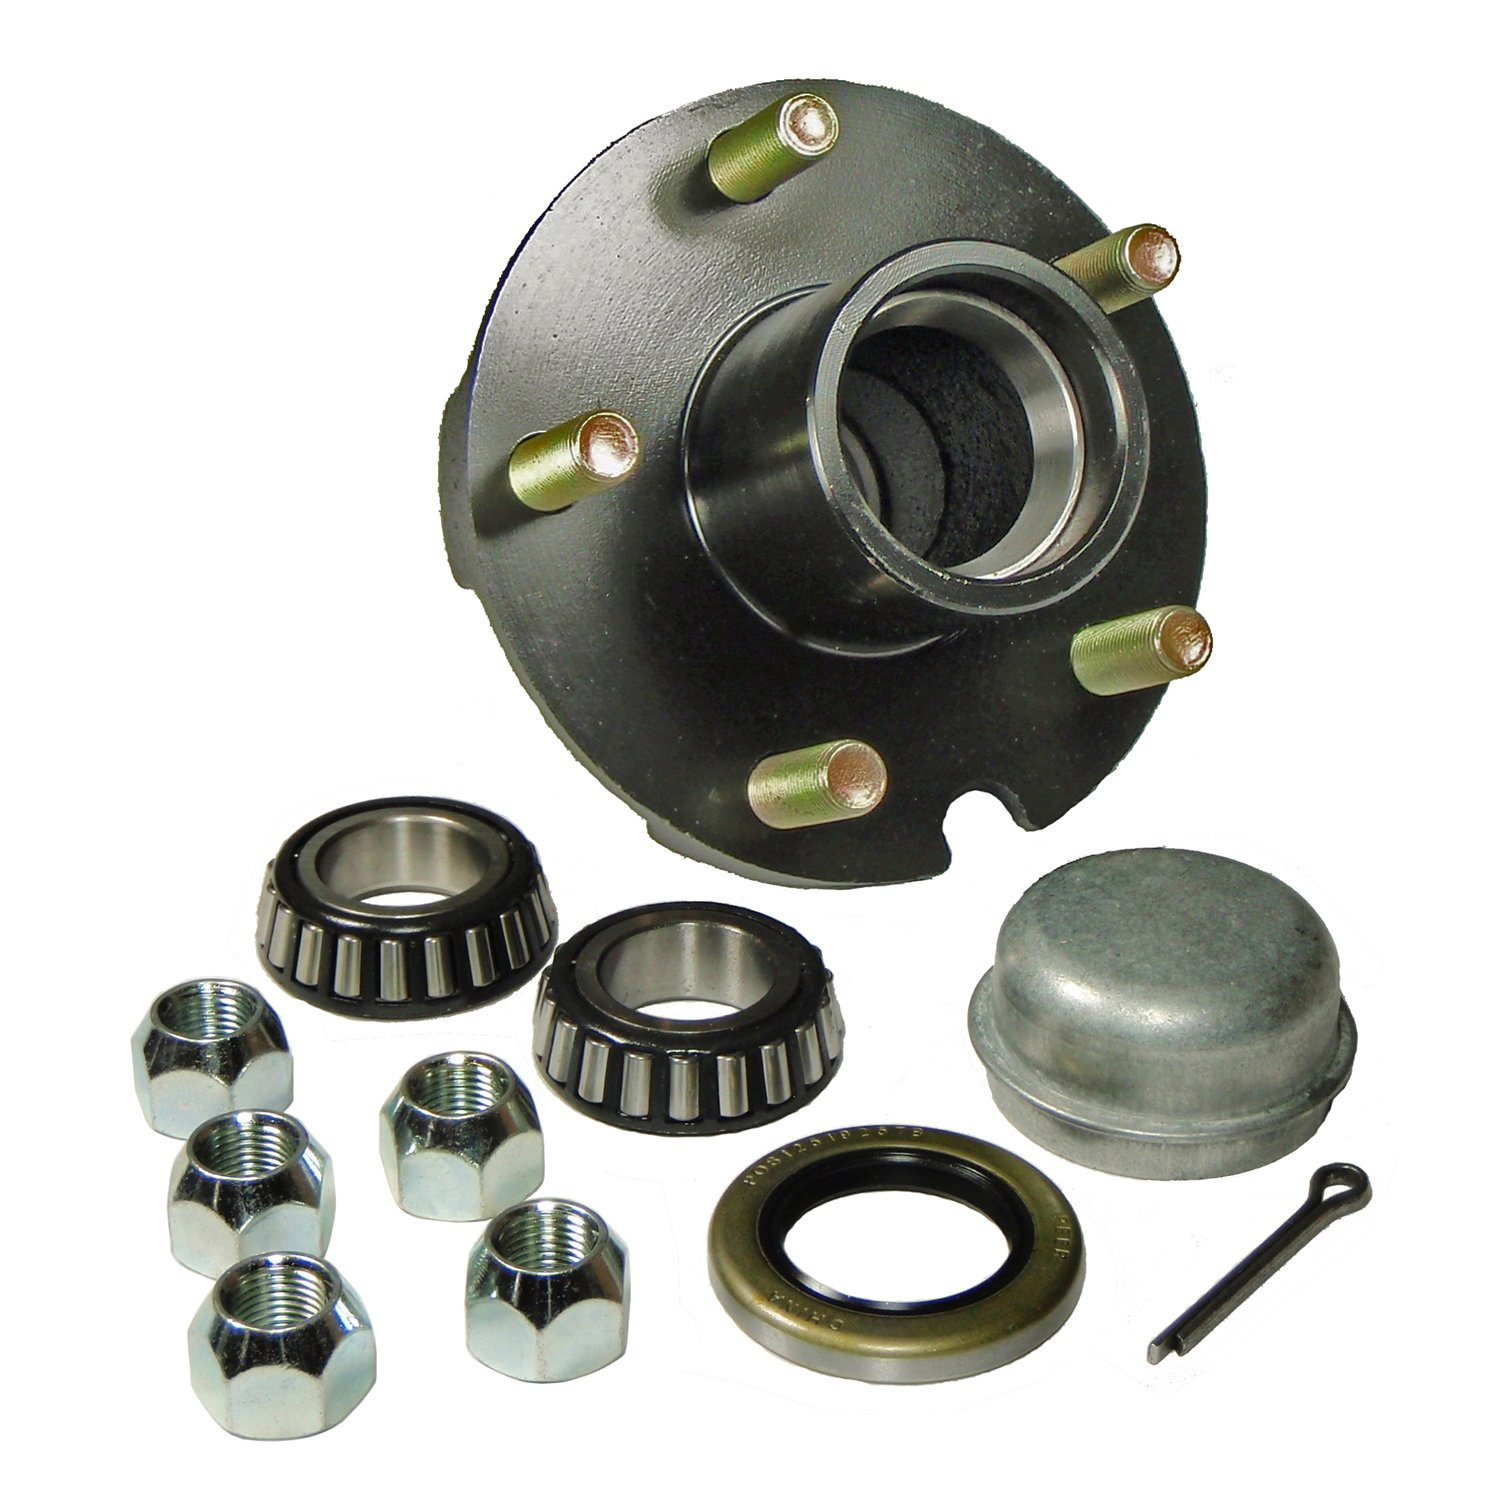 Rigid Hitch Trailer Hub Kit (BT-150-04-A) 5 Bolt on 4-1/2'' Bolt Circle with 1 Inch I.D. Bearings by Rigid Hitch